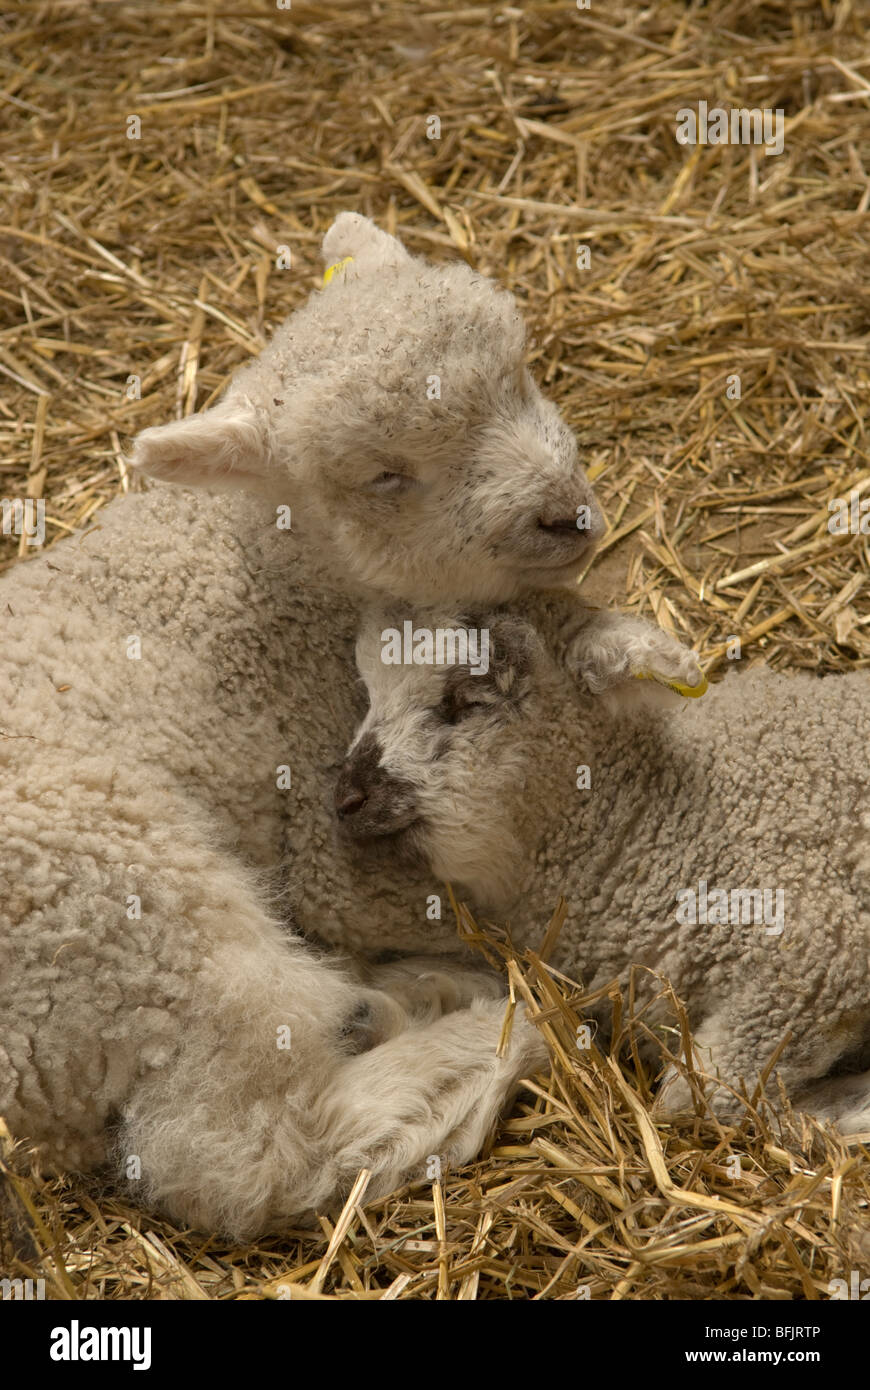 Twin lambs asleep in straw. Sussex, UK. March. - Stock Image